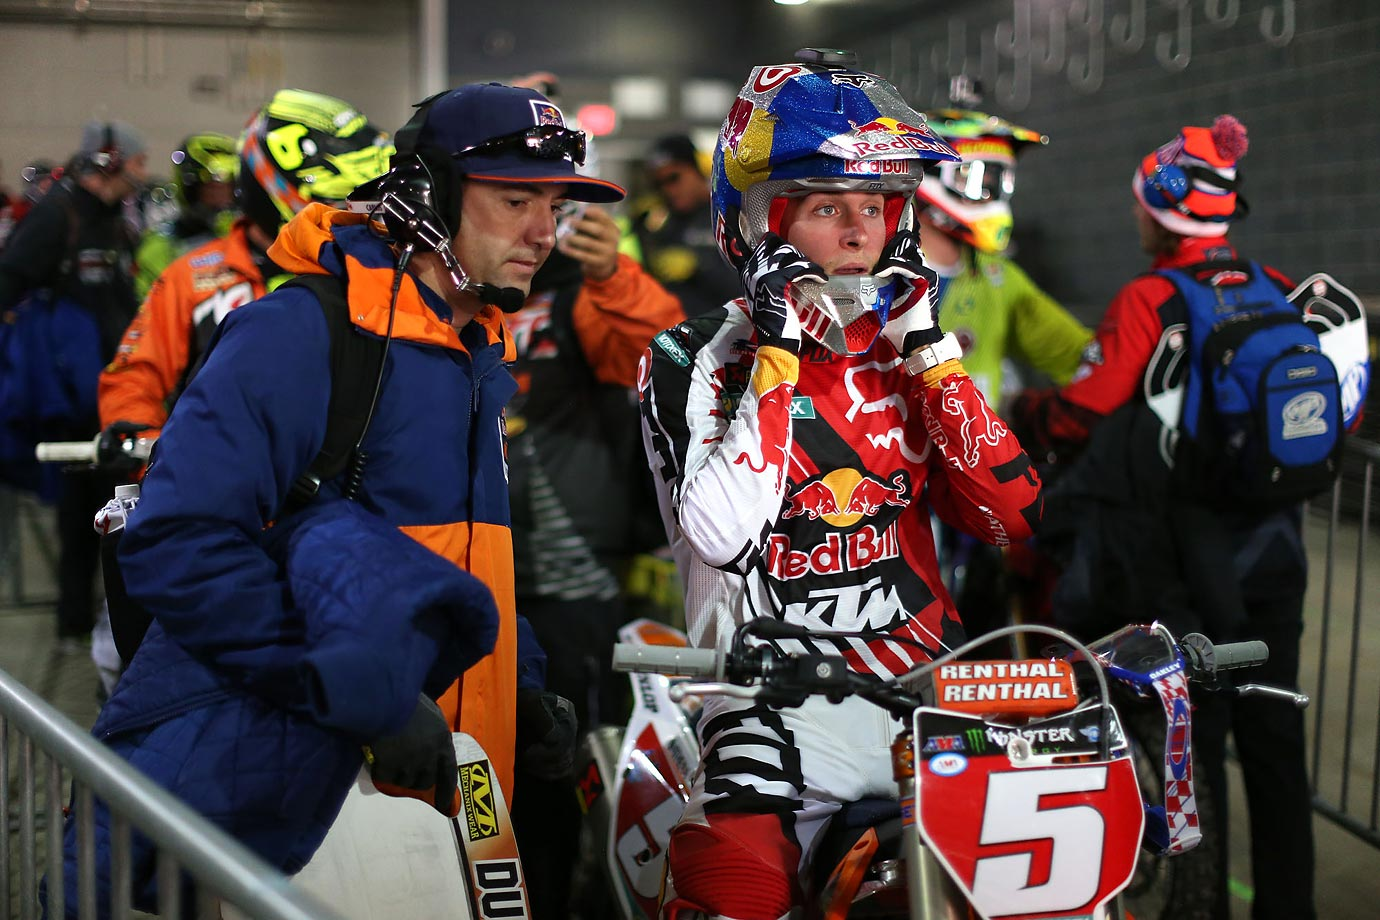 Dungey and his race team technician, Carlos Rivera, in the tunnel heading for a practice run.